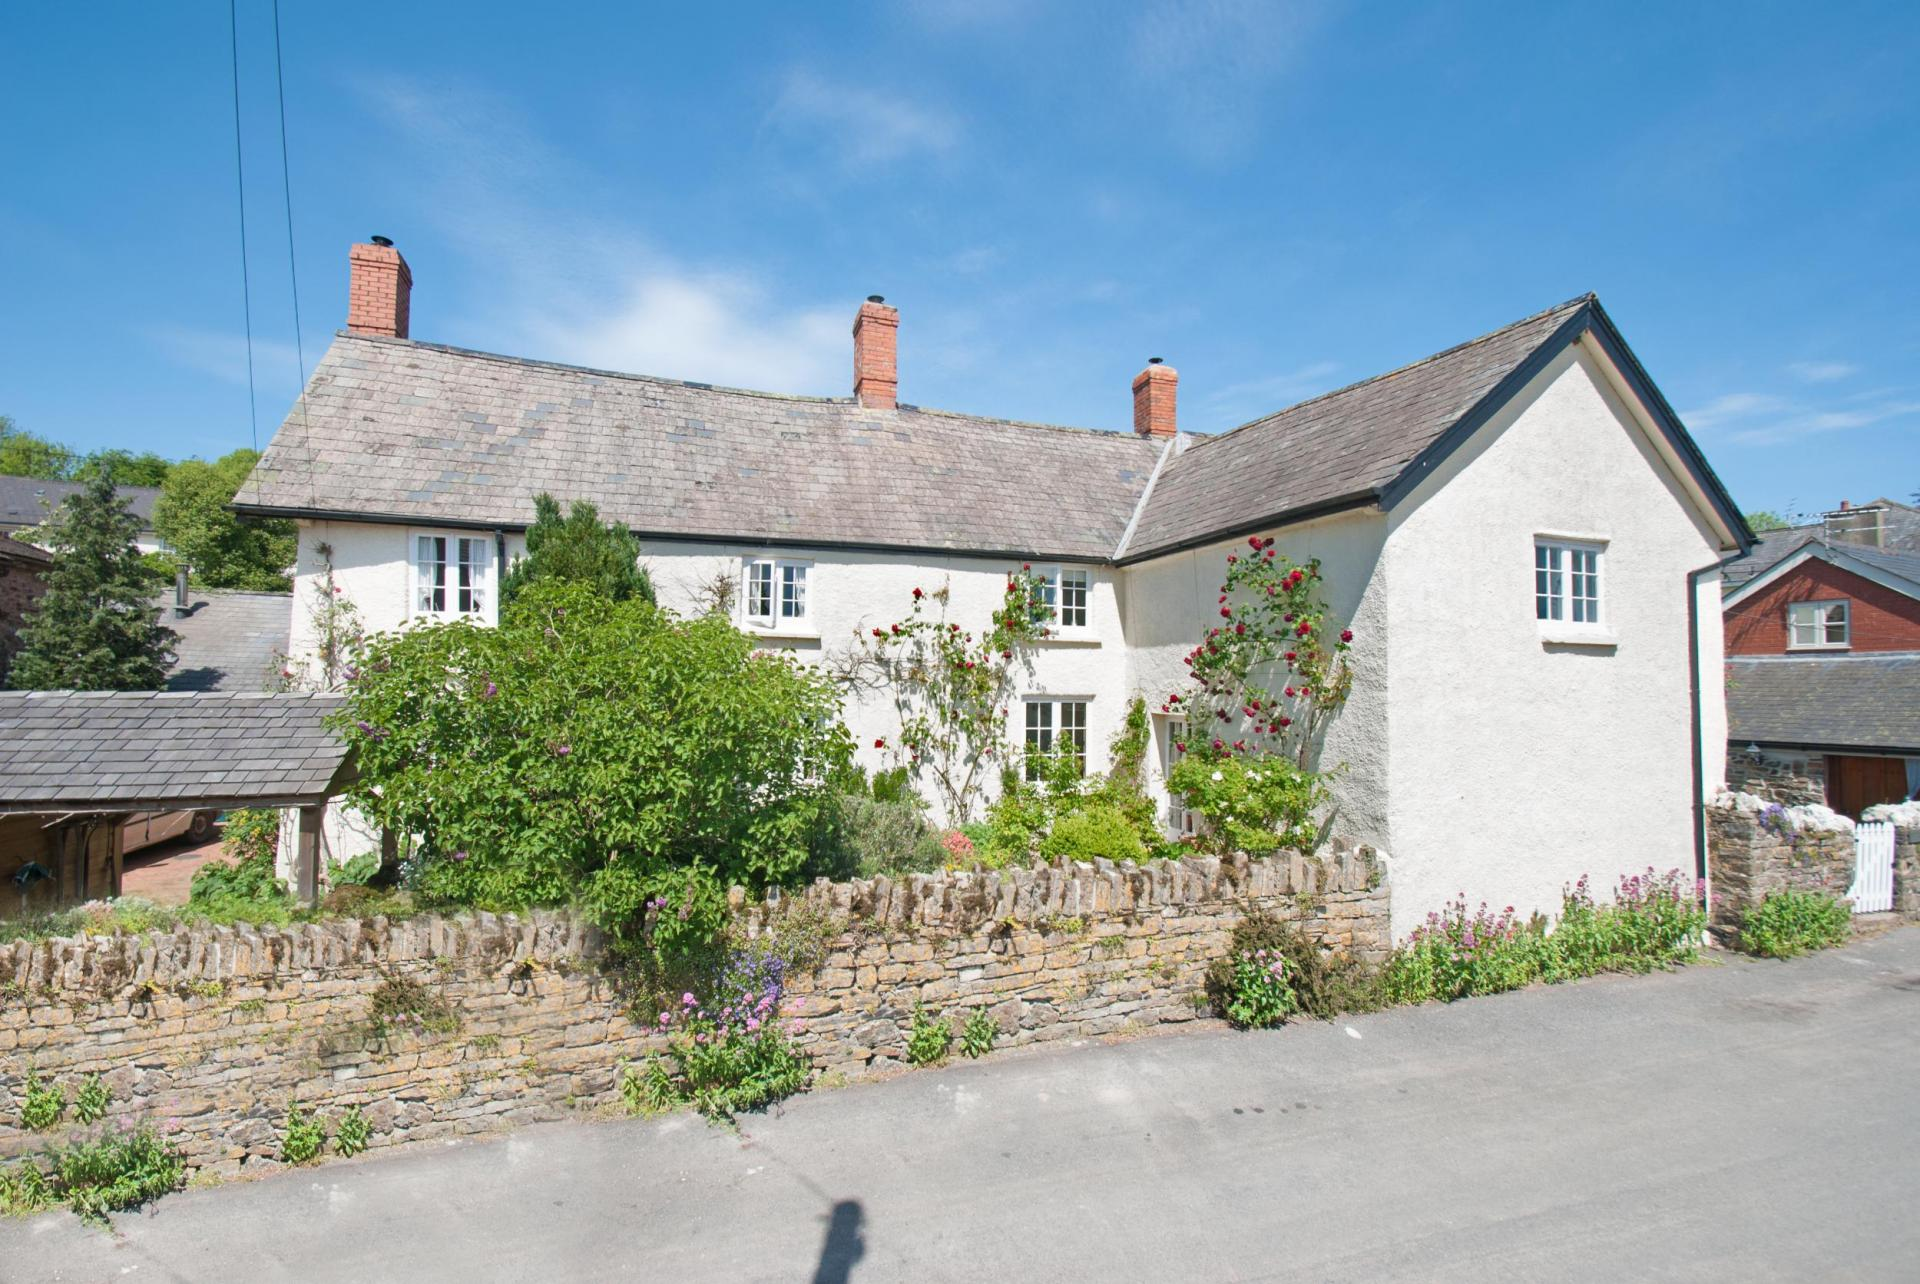 Property For Sale In Or Close To Bampton Devon